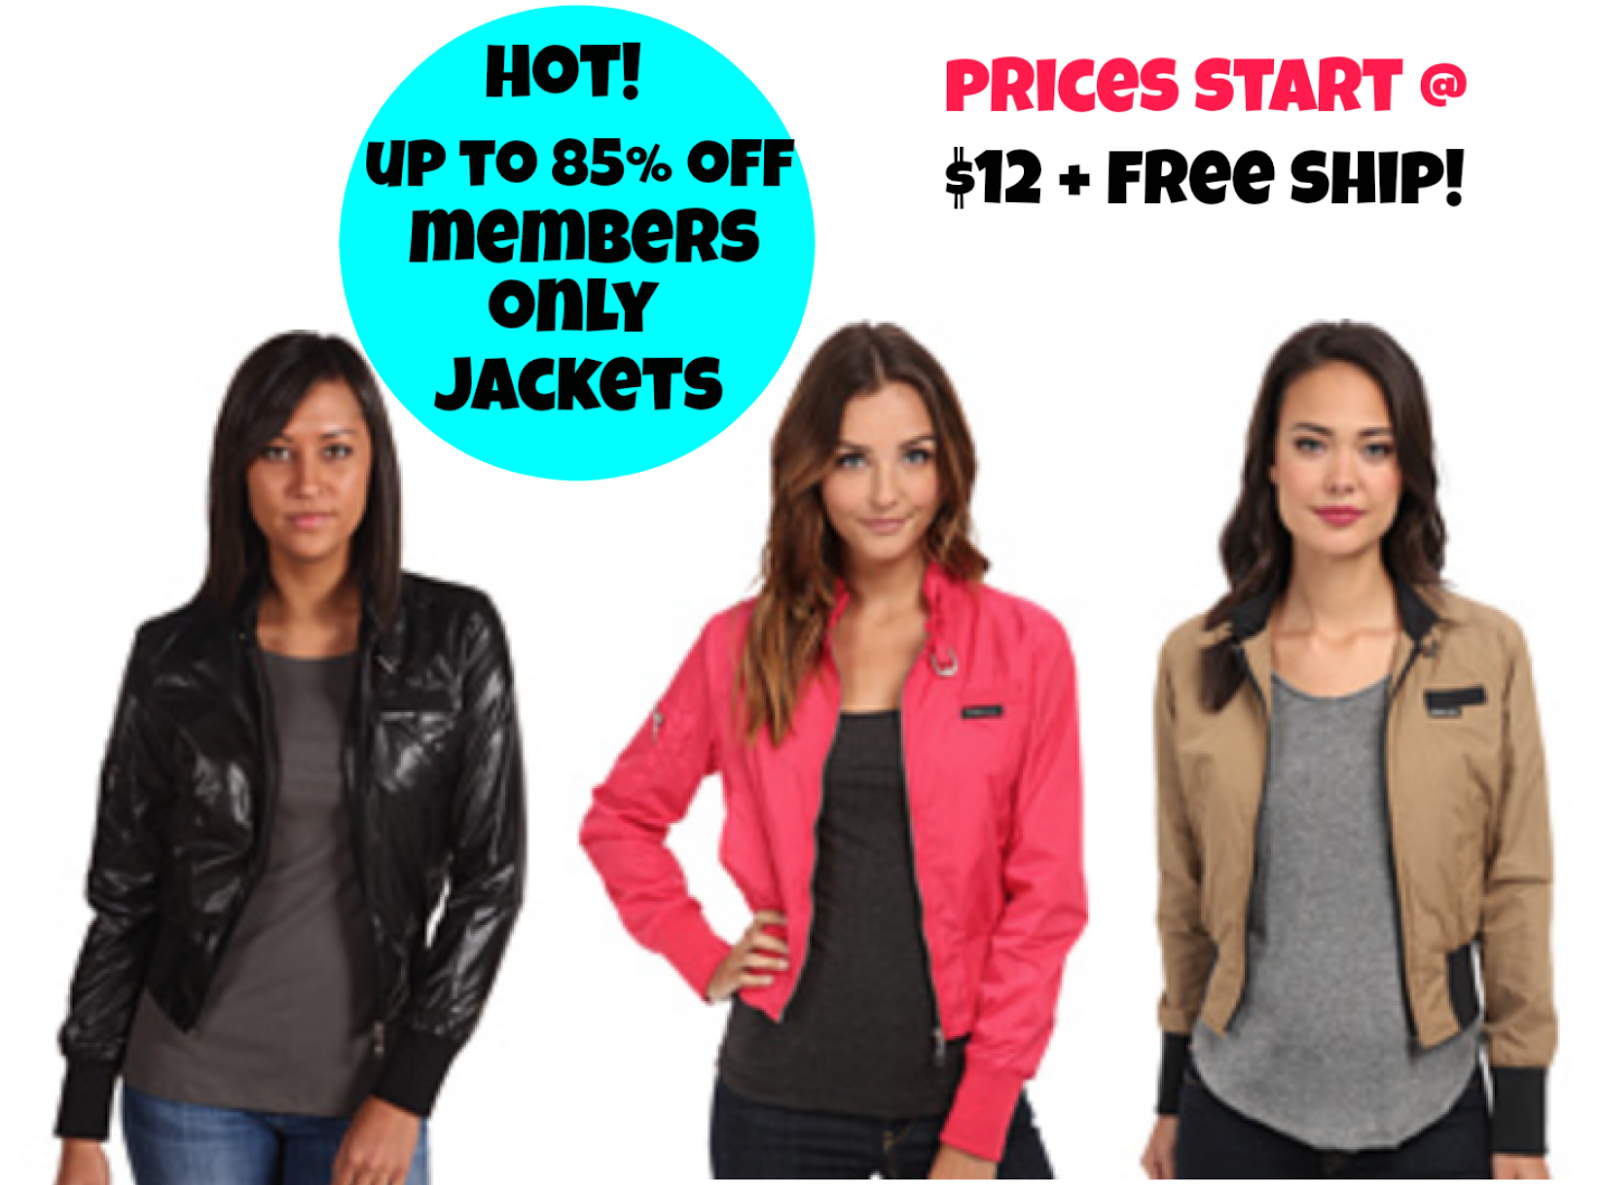 http://www.thebinderladies.com/2015/02/hot-6pm-up-to-85-off-womens-members.html